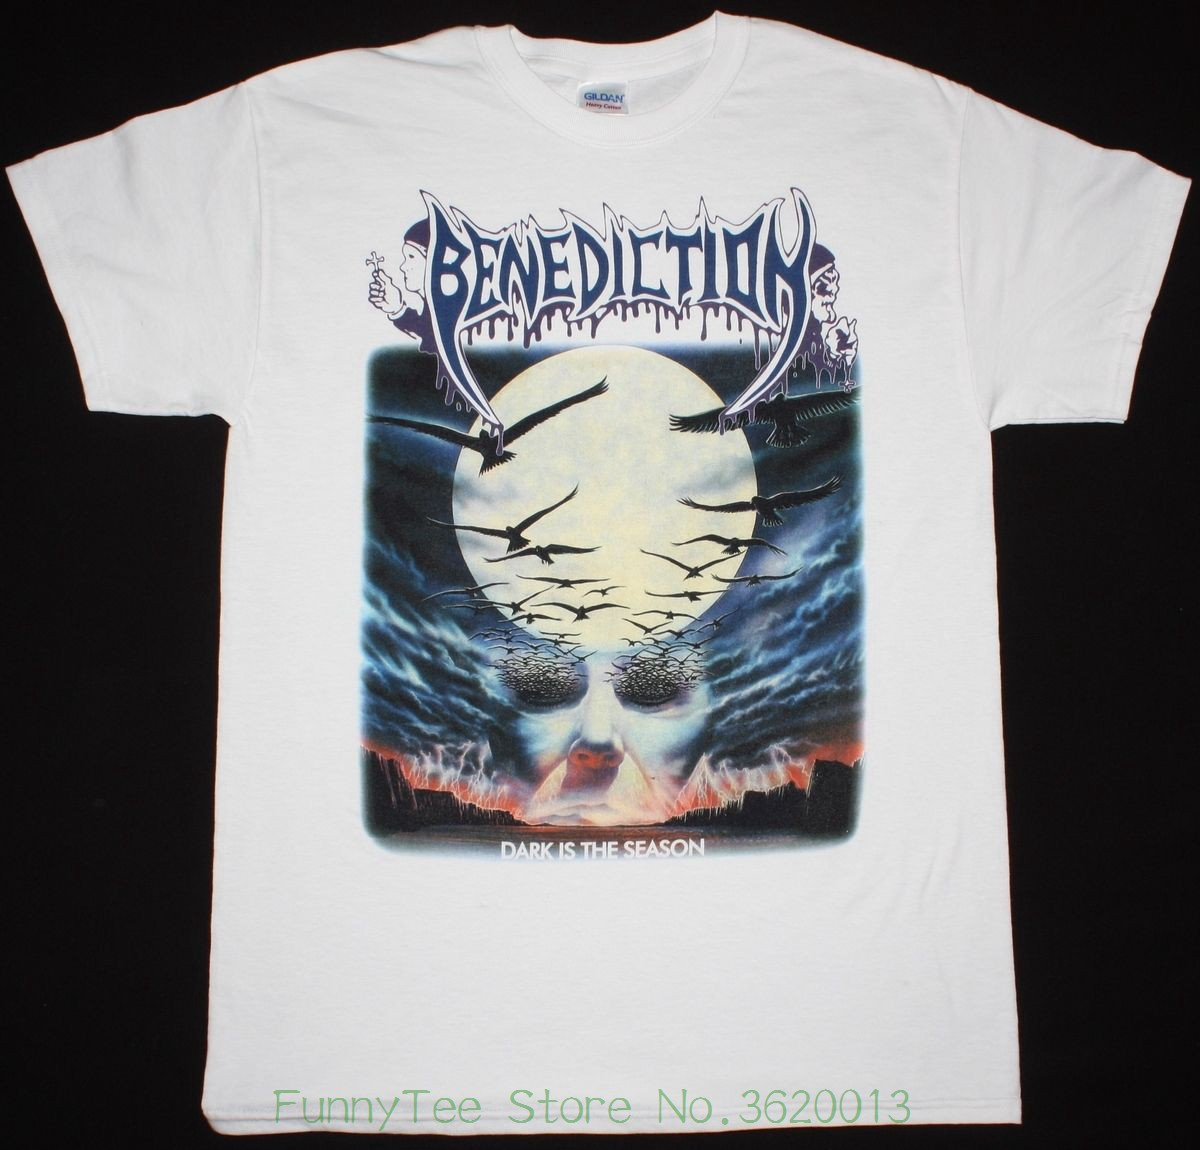 Benediction Dark Is The Season Dismember Napalm Death S - xxl New White T-shirt ...